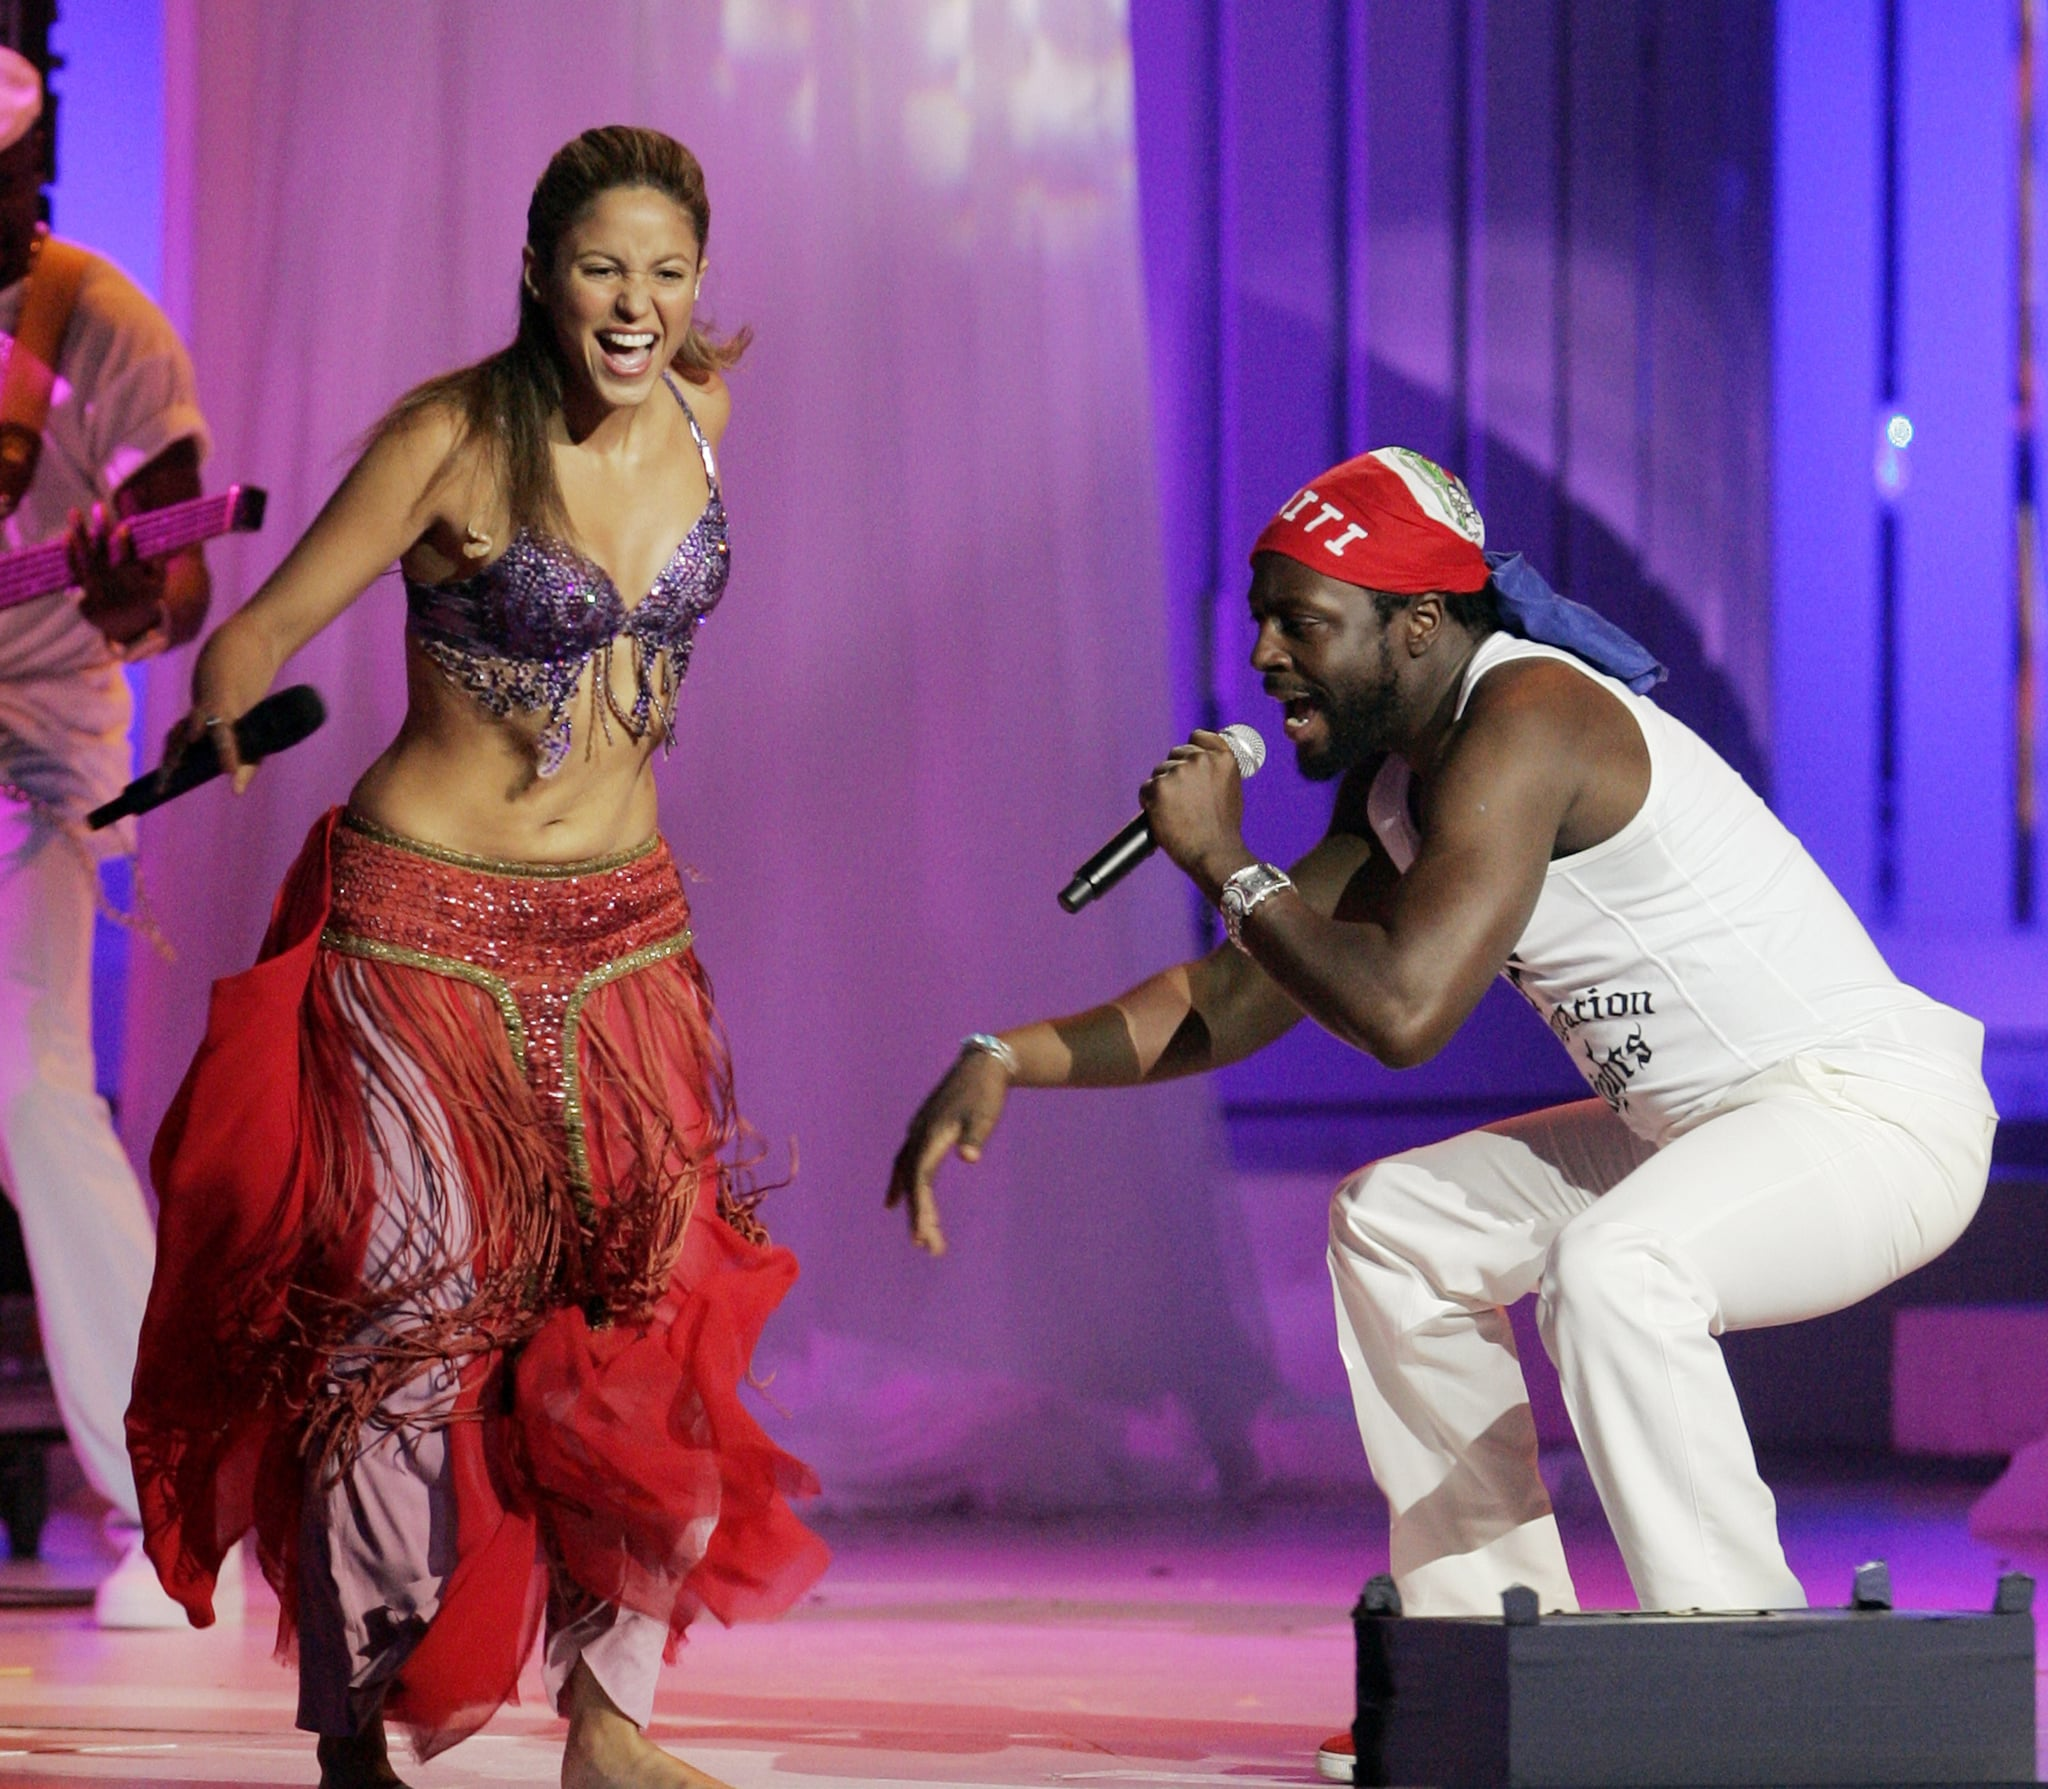 Shakira and Wyclef Jean shared the stage in December 2006.